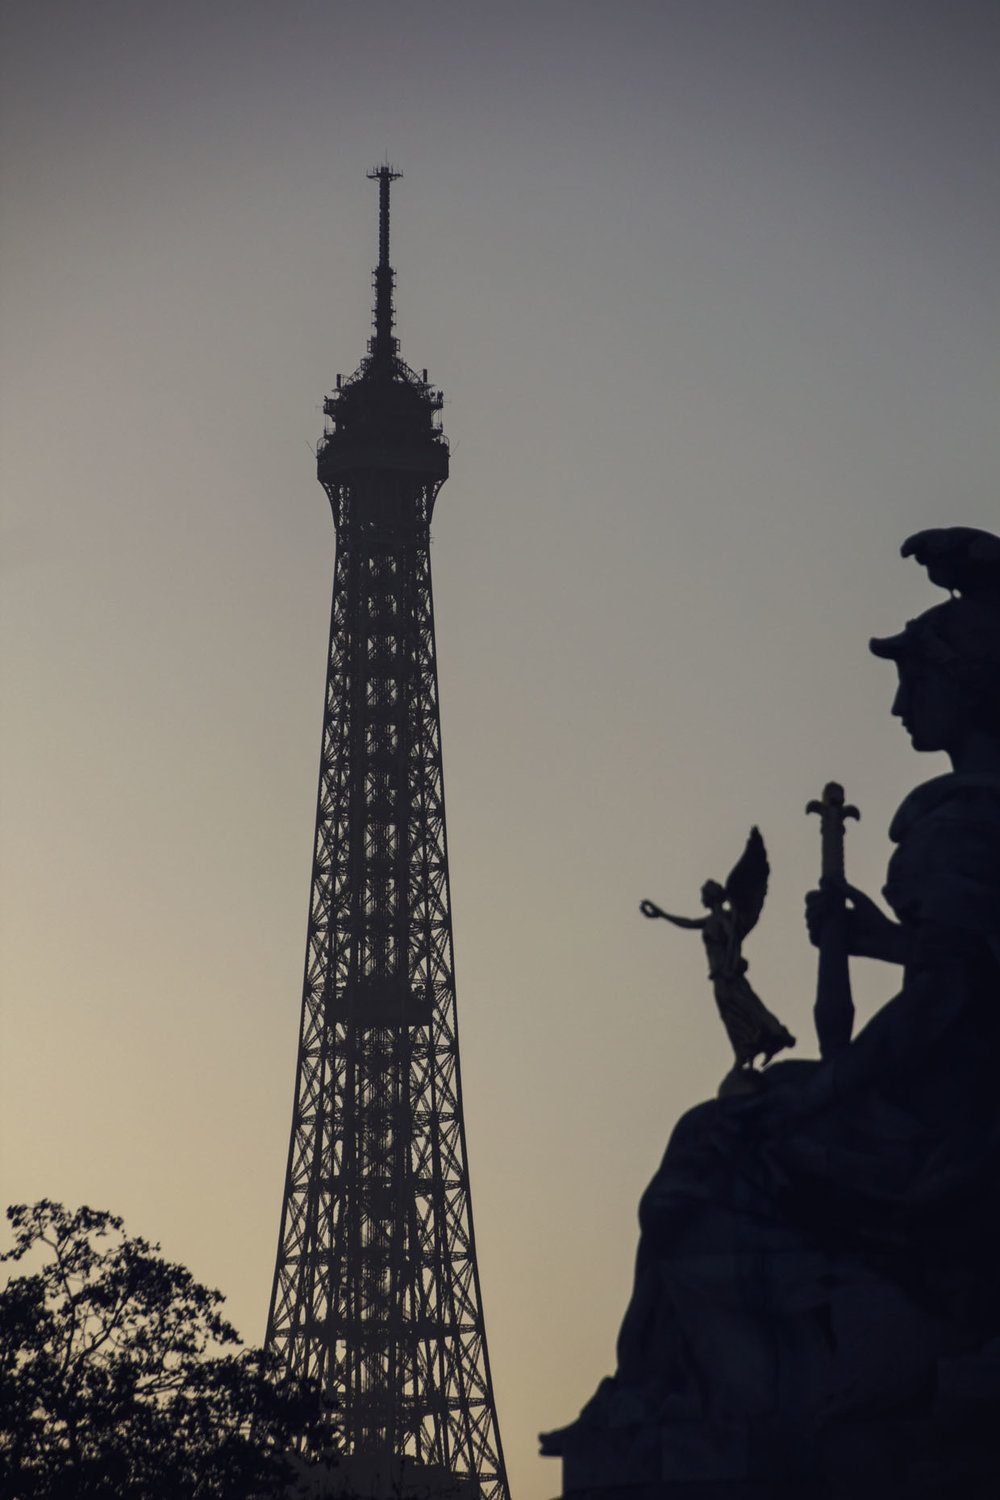 France_Paris_IMG_2150-e_webuse.jpg